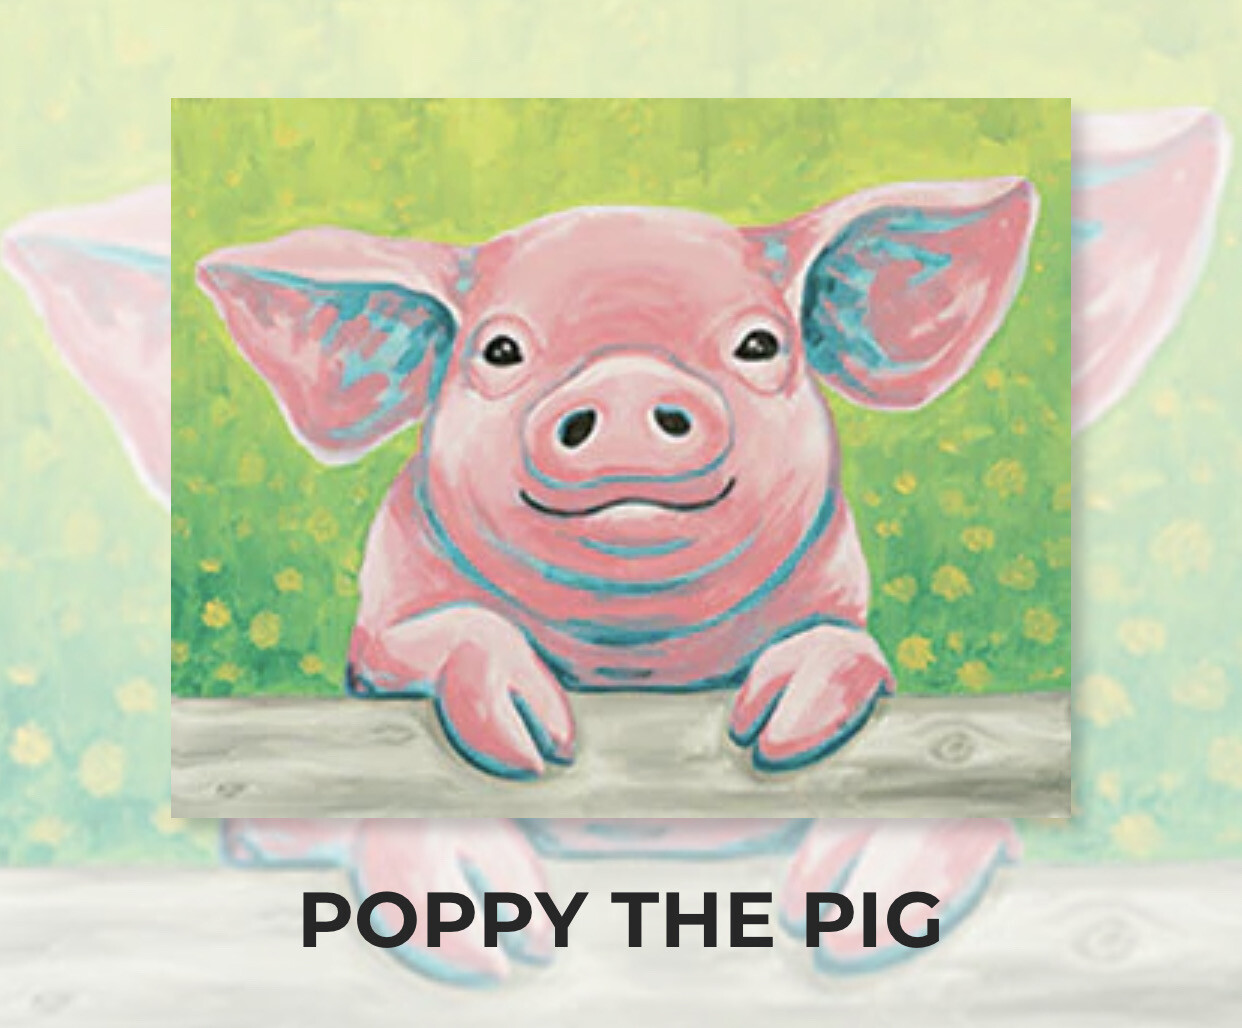 Poppy The Pig ADULT Acrylic Paint On Canvas DIY Art Kit - 3 Week Special Order